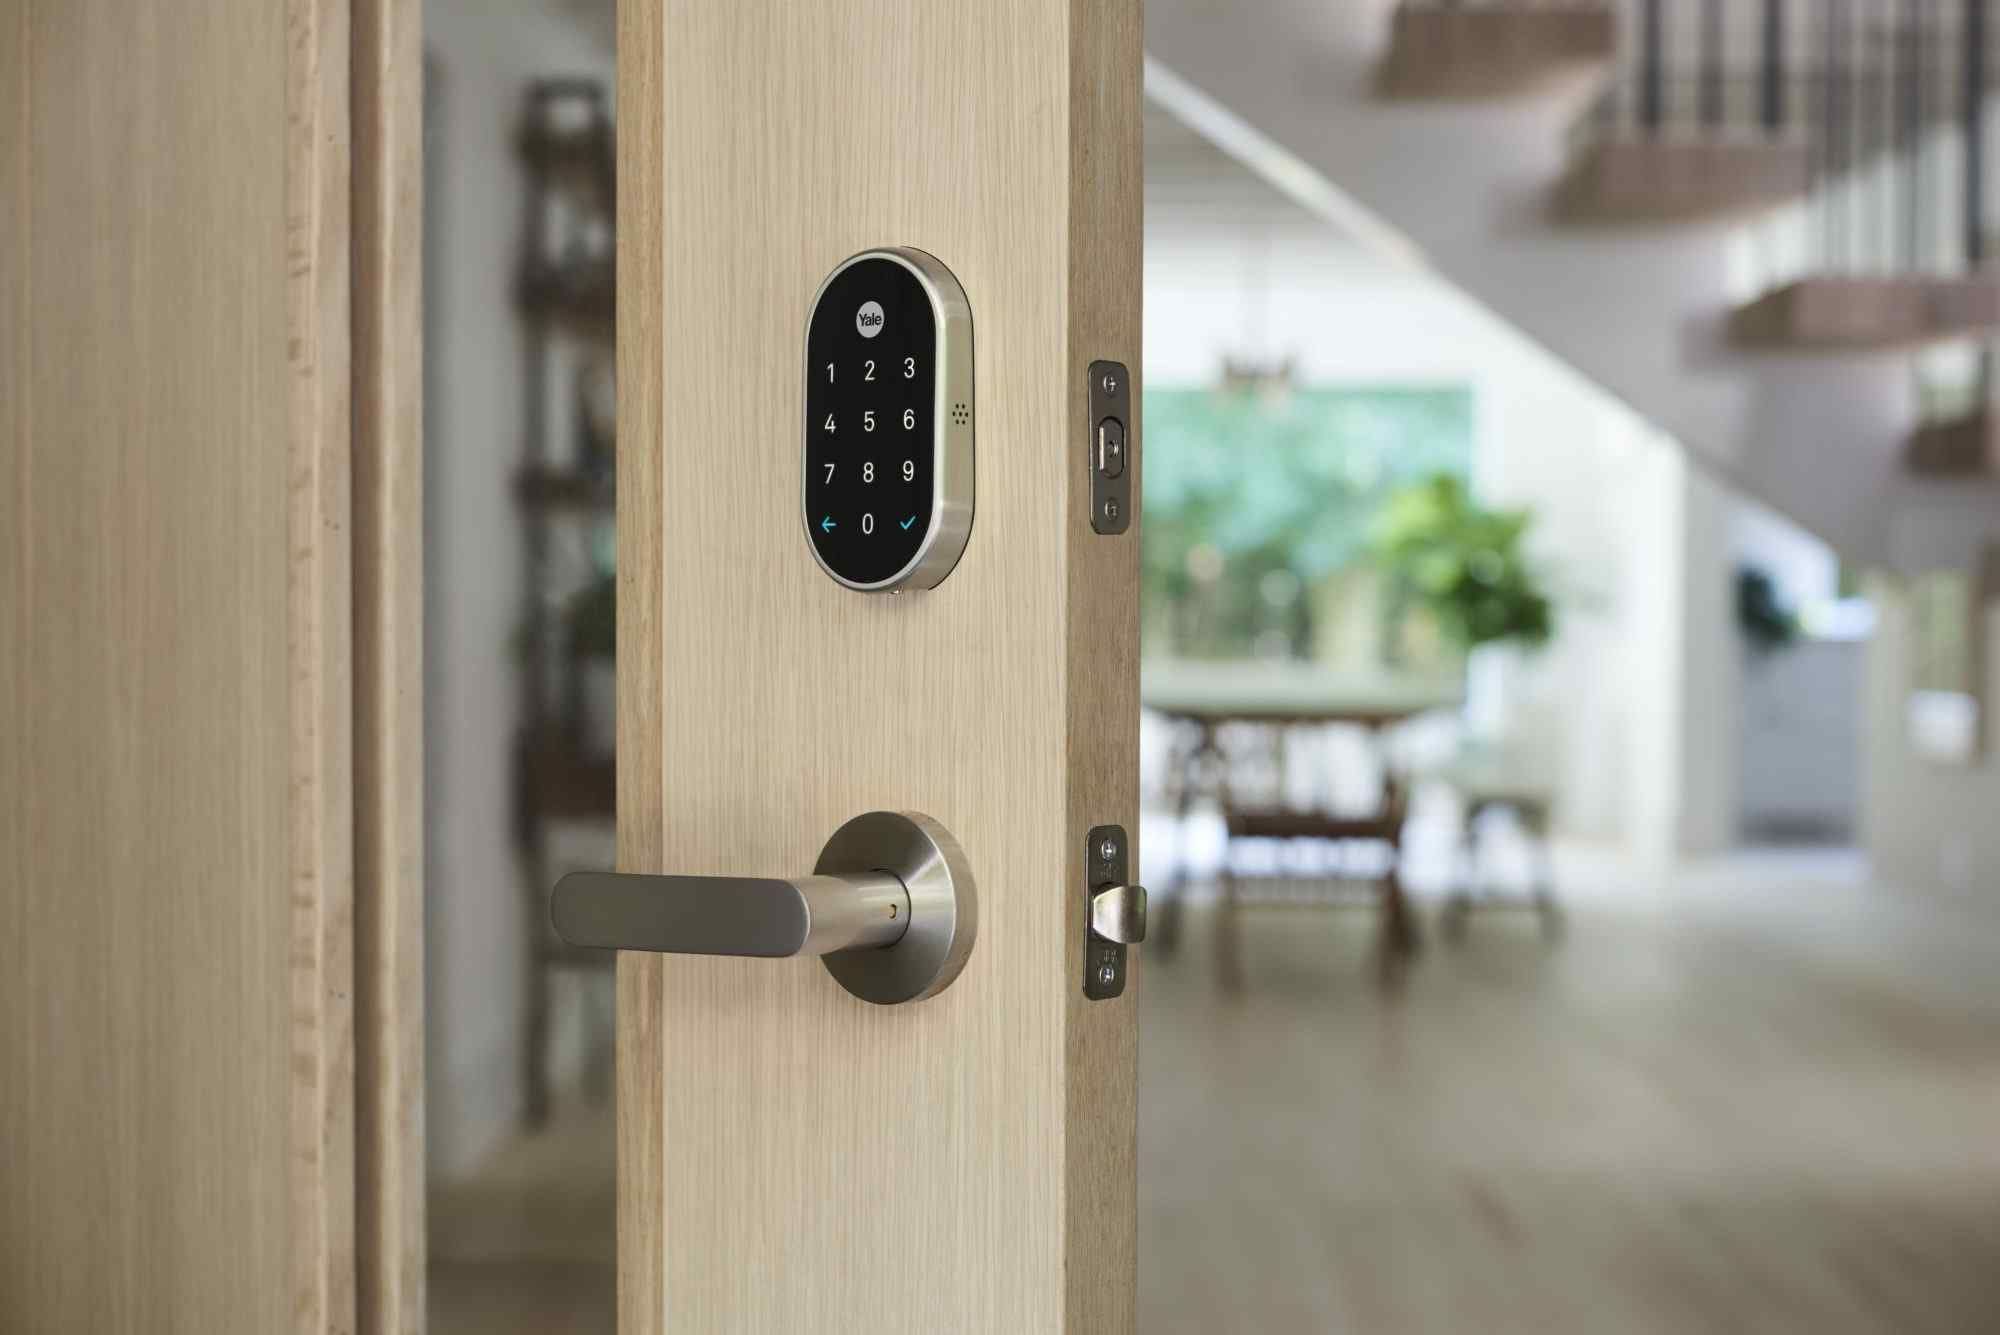 Reliable Locksmith Bloomington Mn Can Help With Your Commercial Locksmith Needs We Have Provided High Quality Locksmith Smart Door Locks Yale Locks Smart Lock